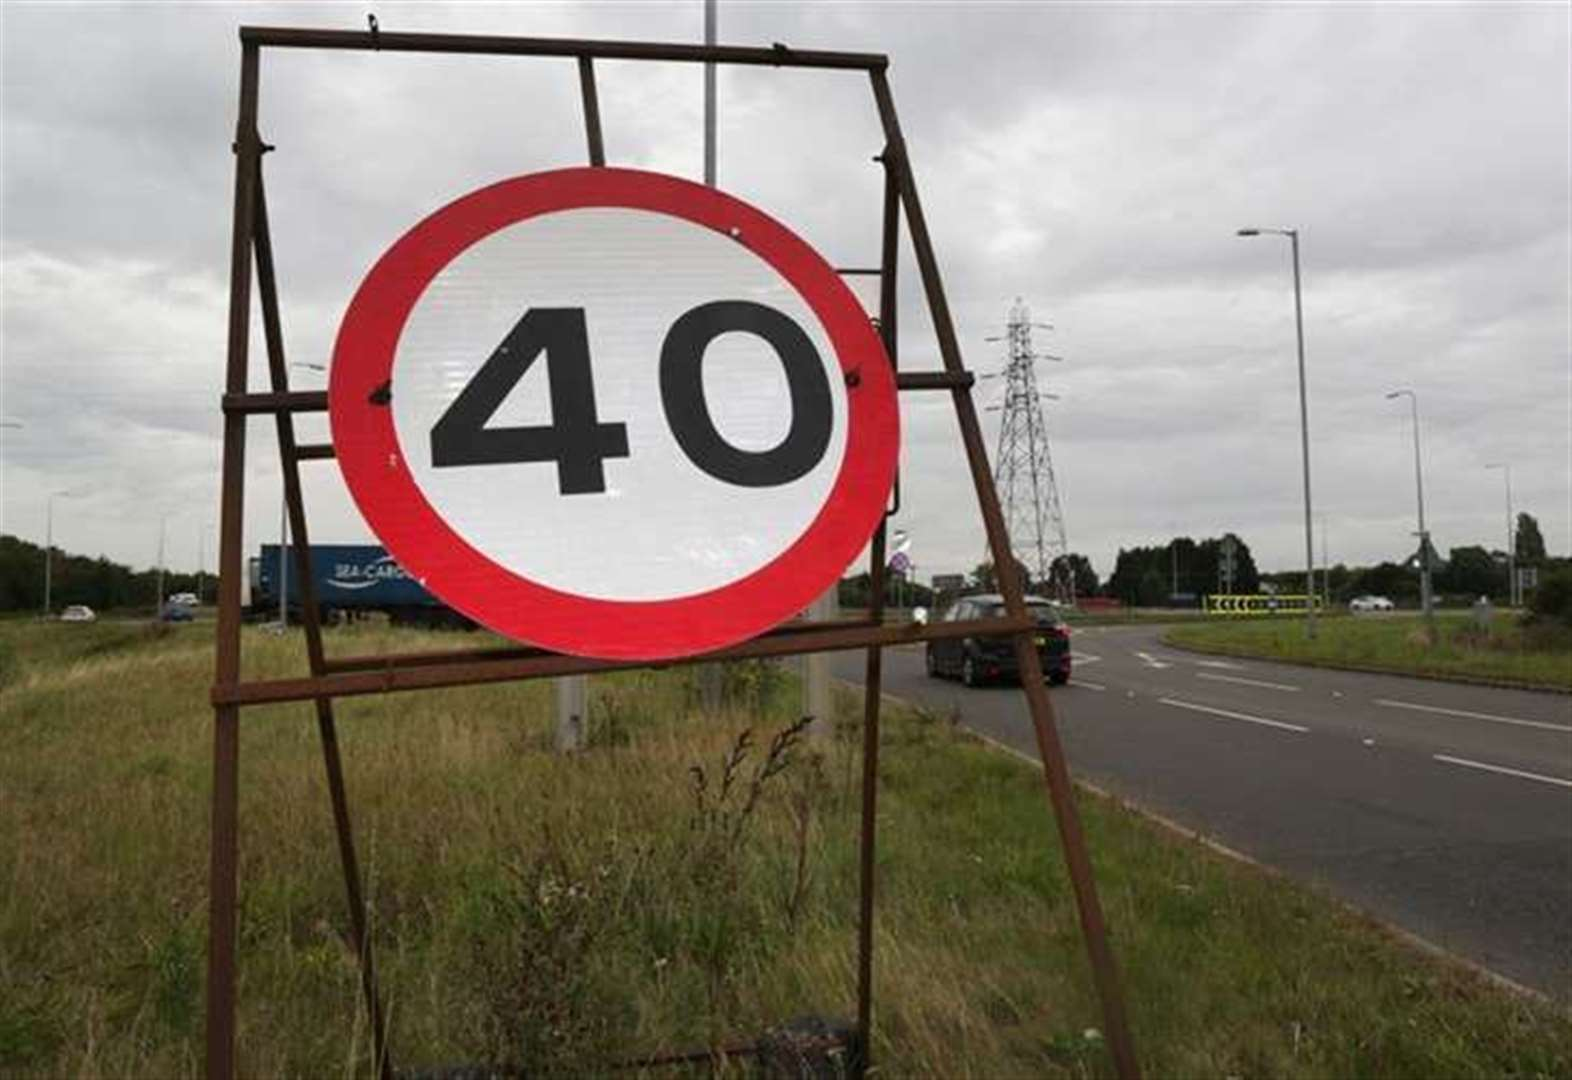 POLL: Should the A46 roundabout at Farndon be limited to a 40mph speed limit?